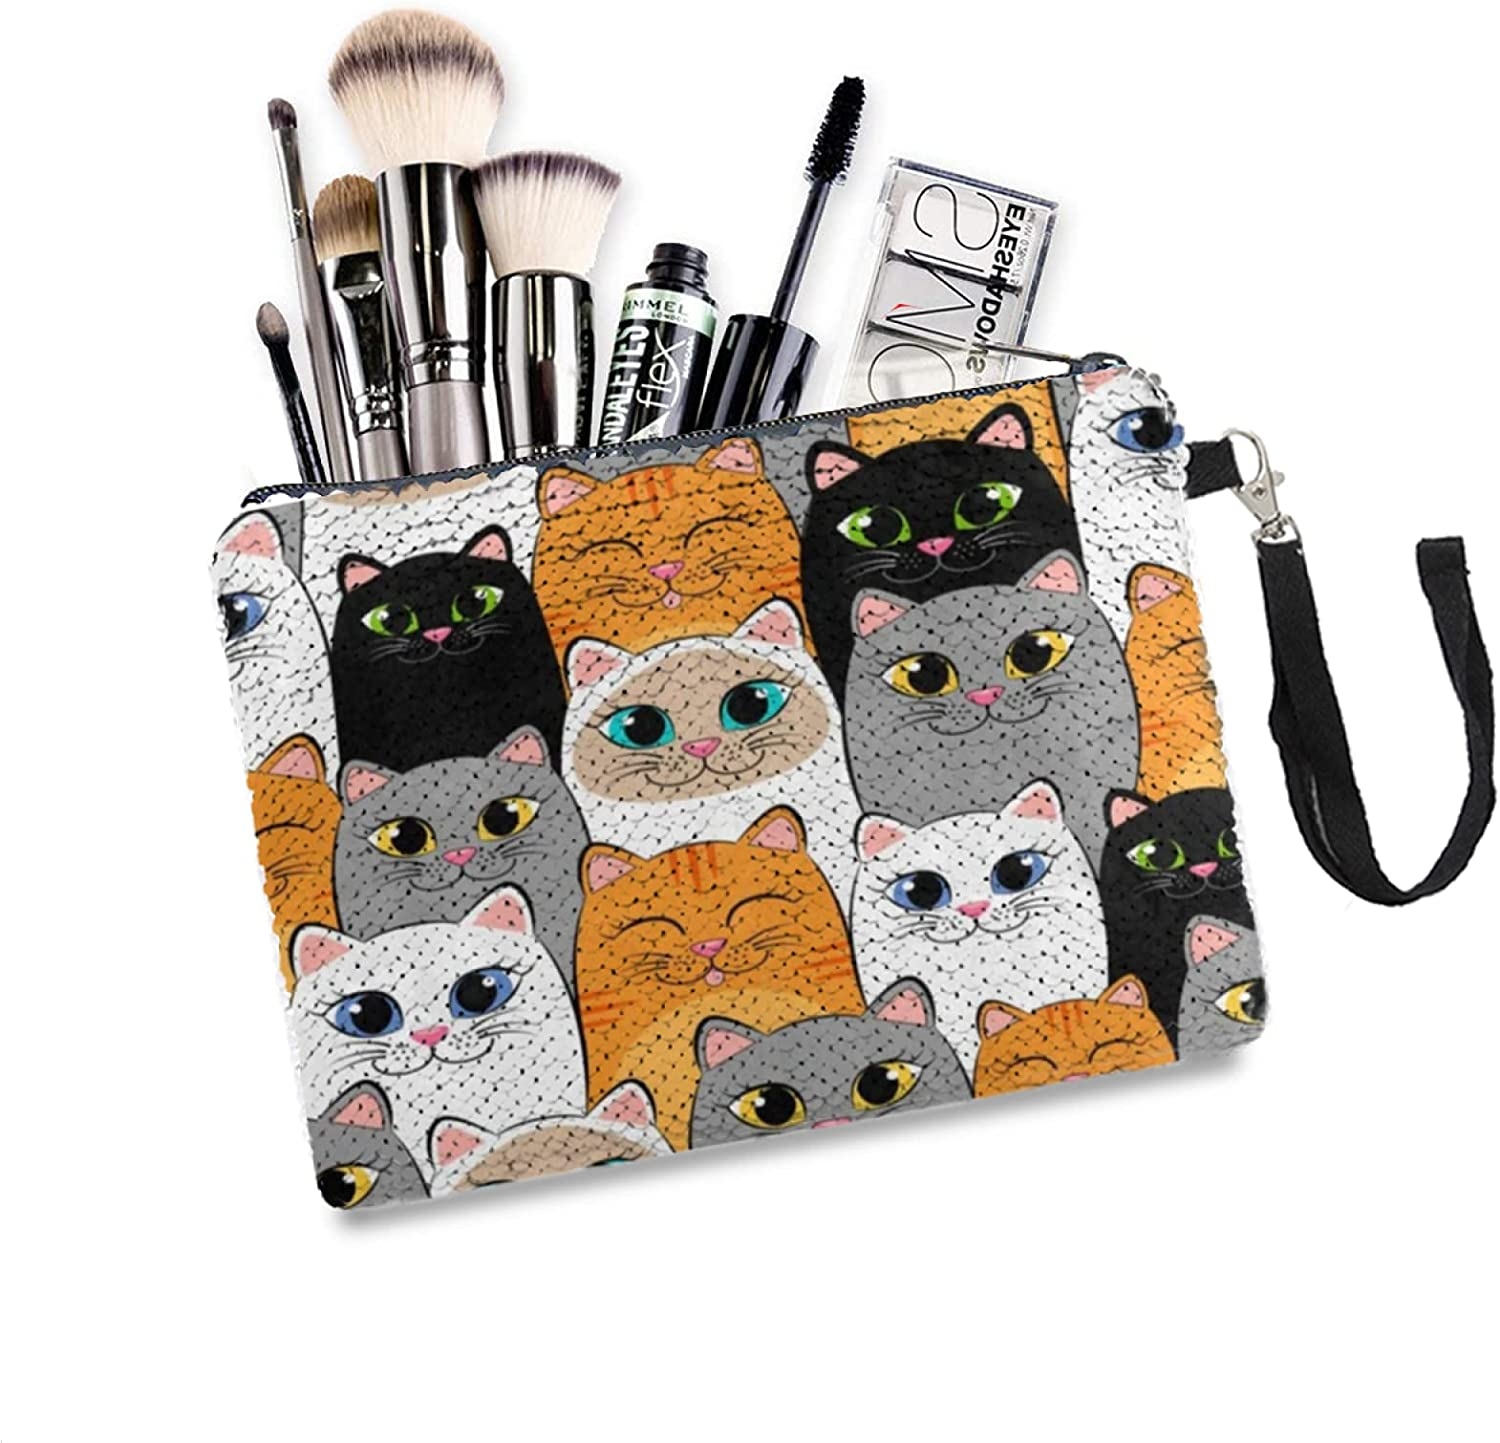 Makeup Bag Cartoon Cat Kitten Challenge the lowest price Animal Cosmet Face New products world's highest quality popular Glitter Mermaid